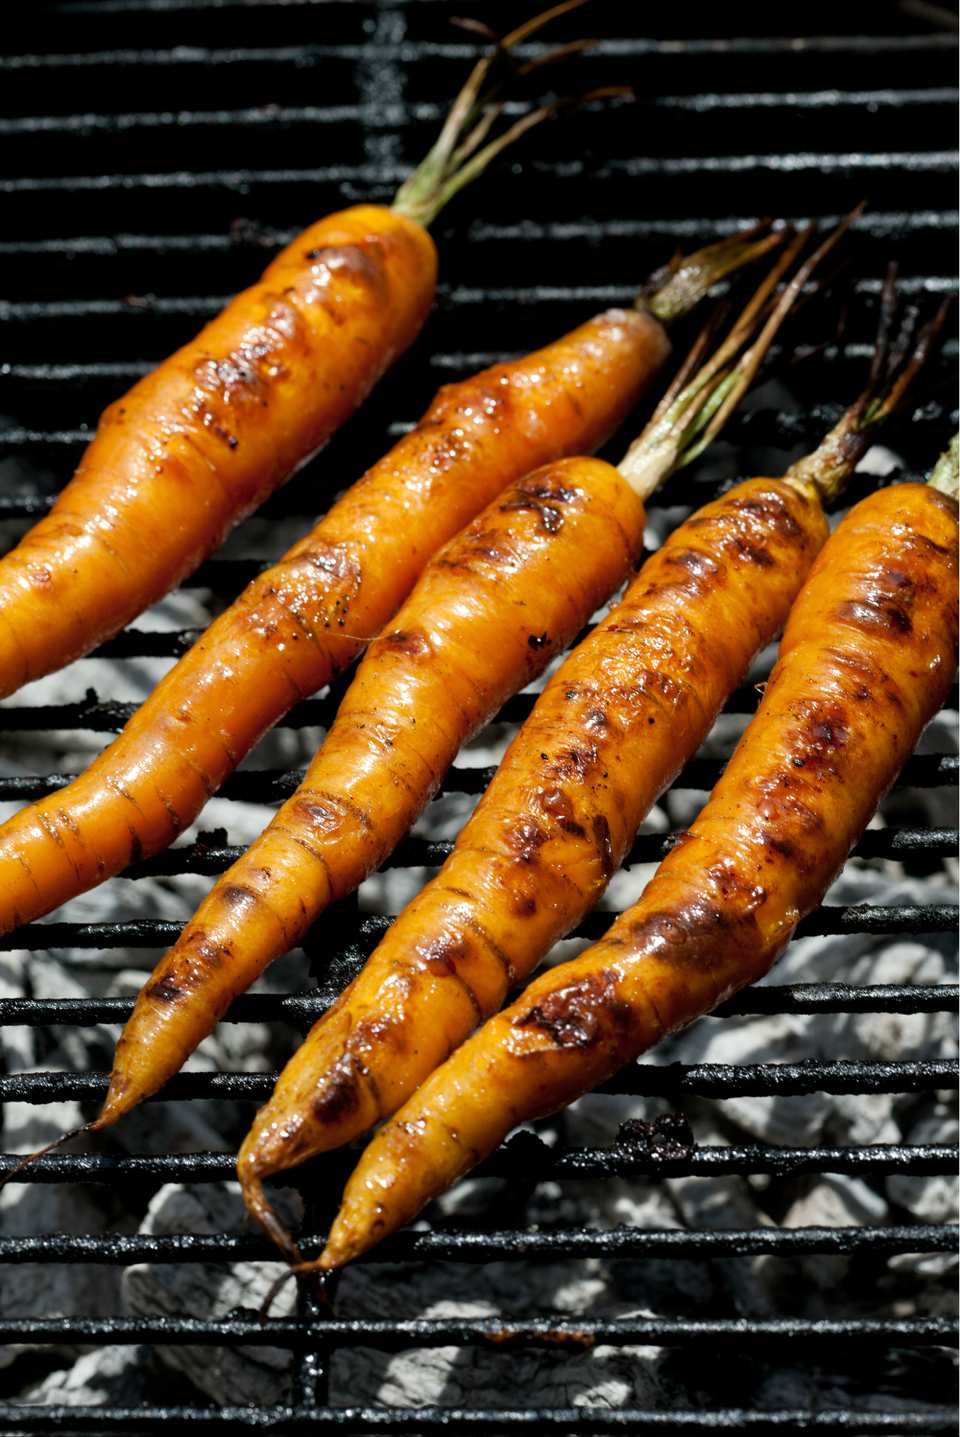 Whole carrots on the grill